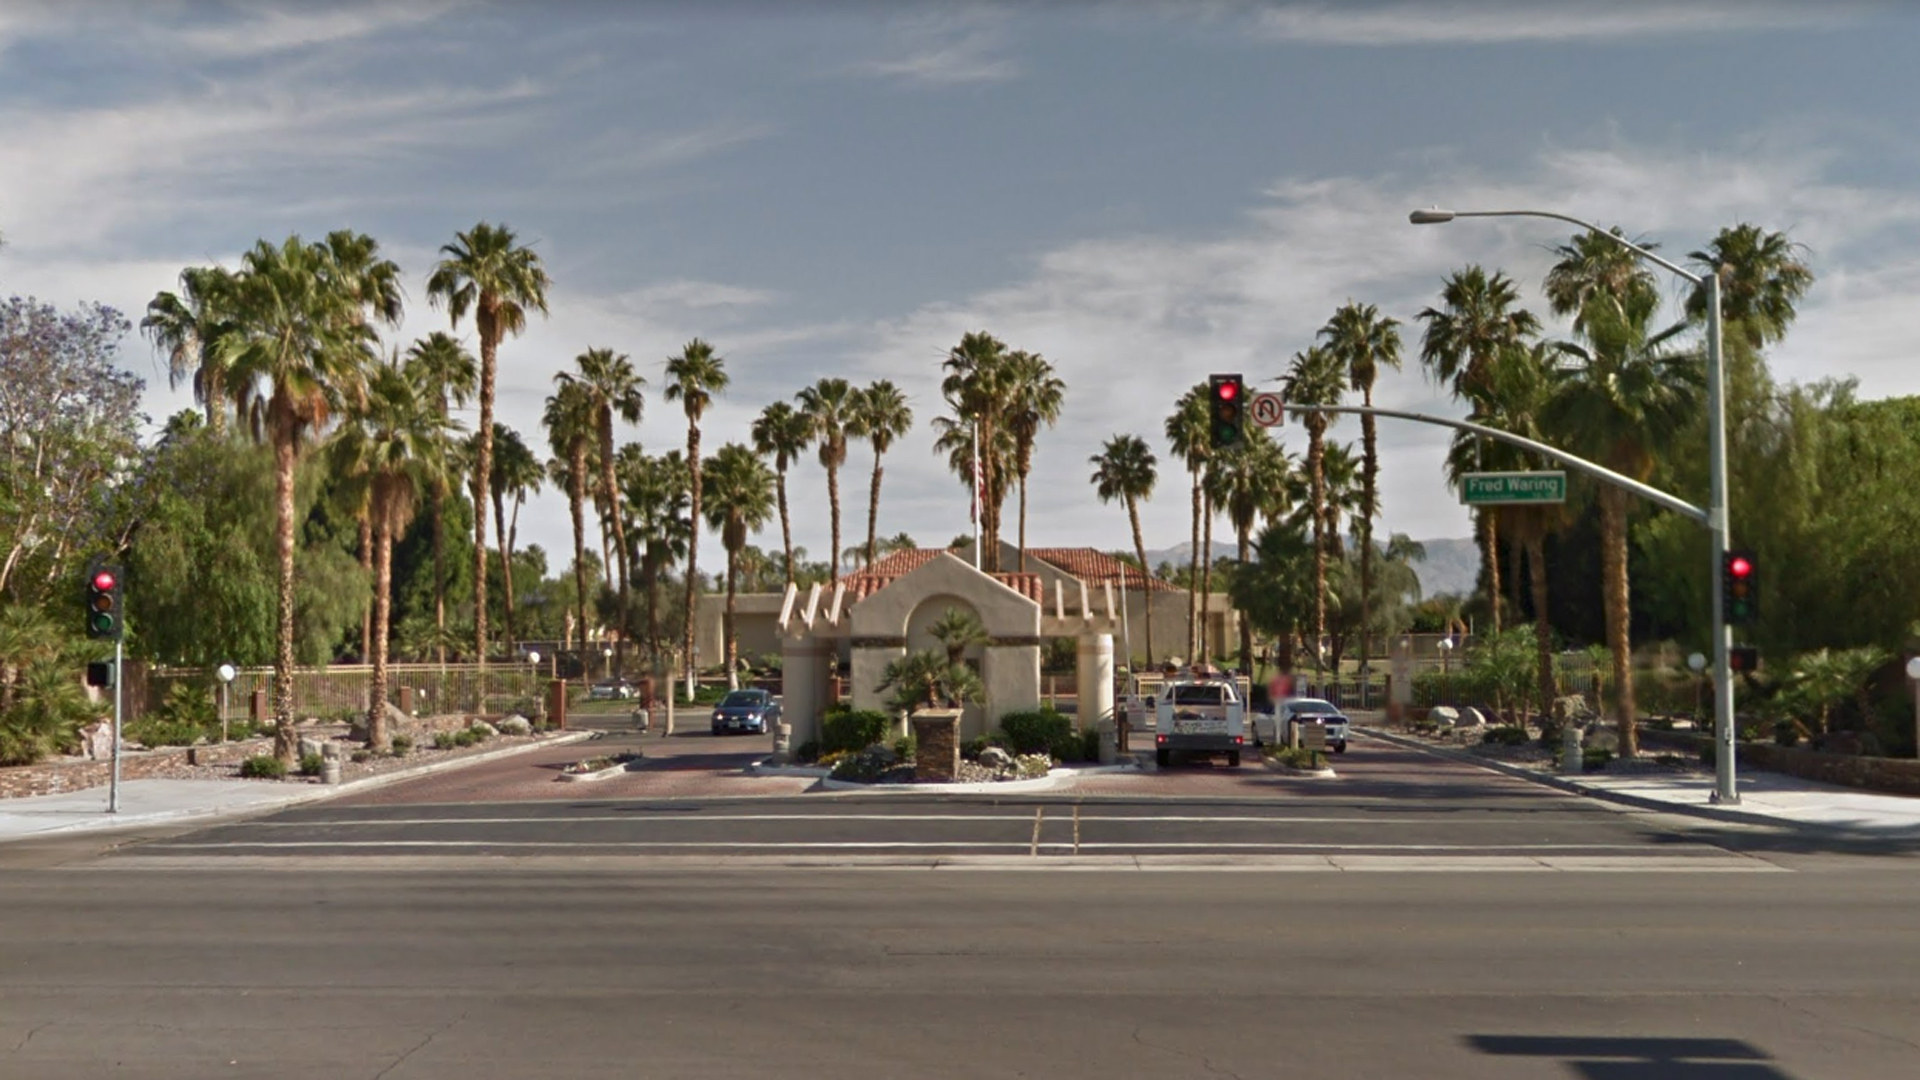 The entrance to the Desert Breeze resort community in Palm Desert, as pictured in a Google Street View image.